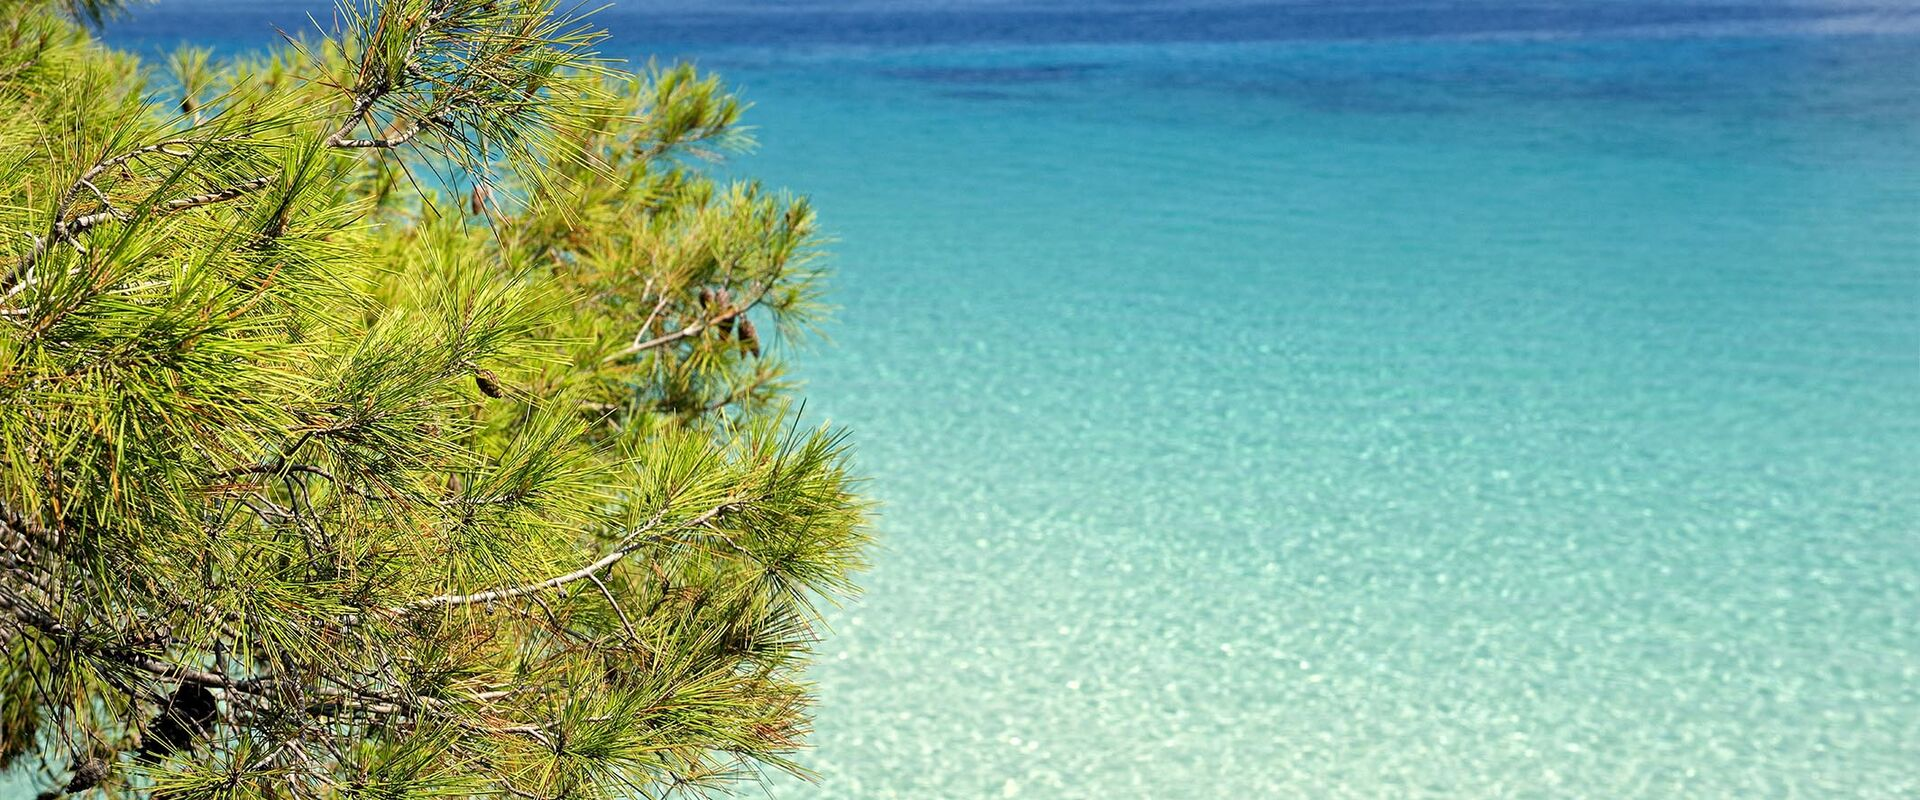 Pines and sea in perfect harmony in Halkidiki